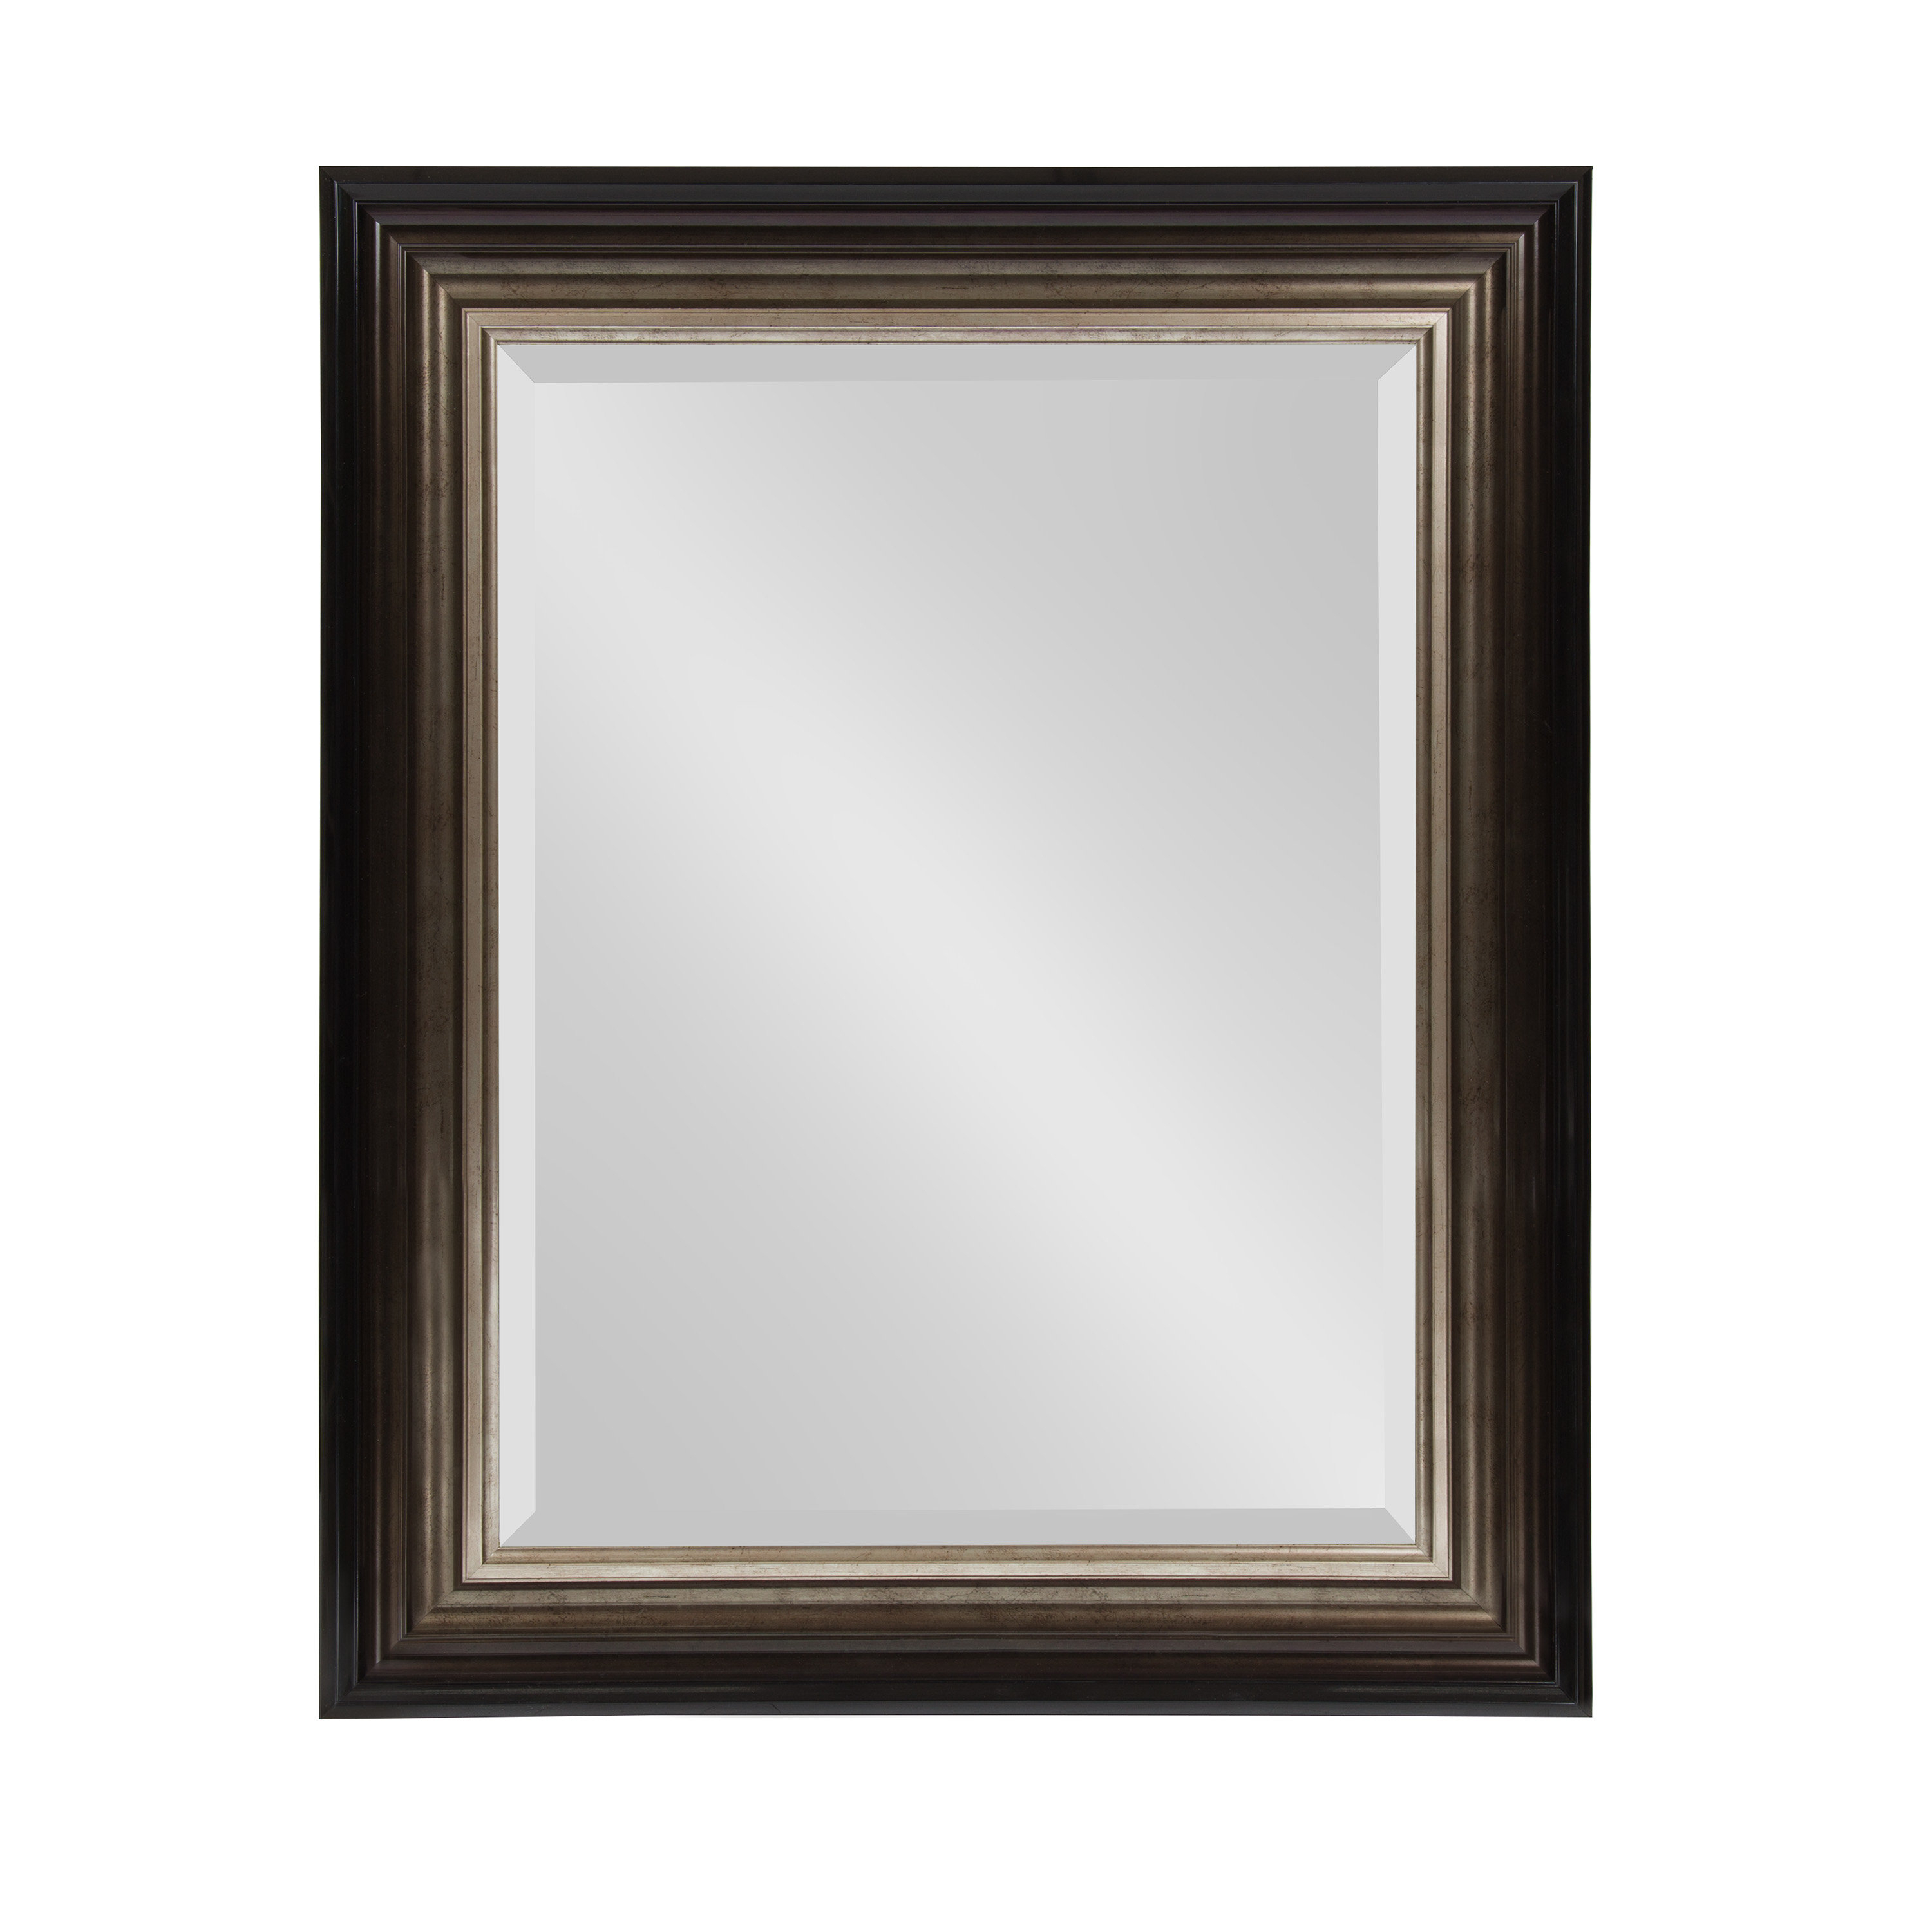 2020 Charlton Home Saltford Framed Rectangle Accent Mirror For Kristy Rectangular Beveled Vanity Mirrors In Distressed (View 1 of 20)